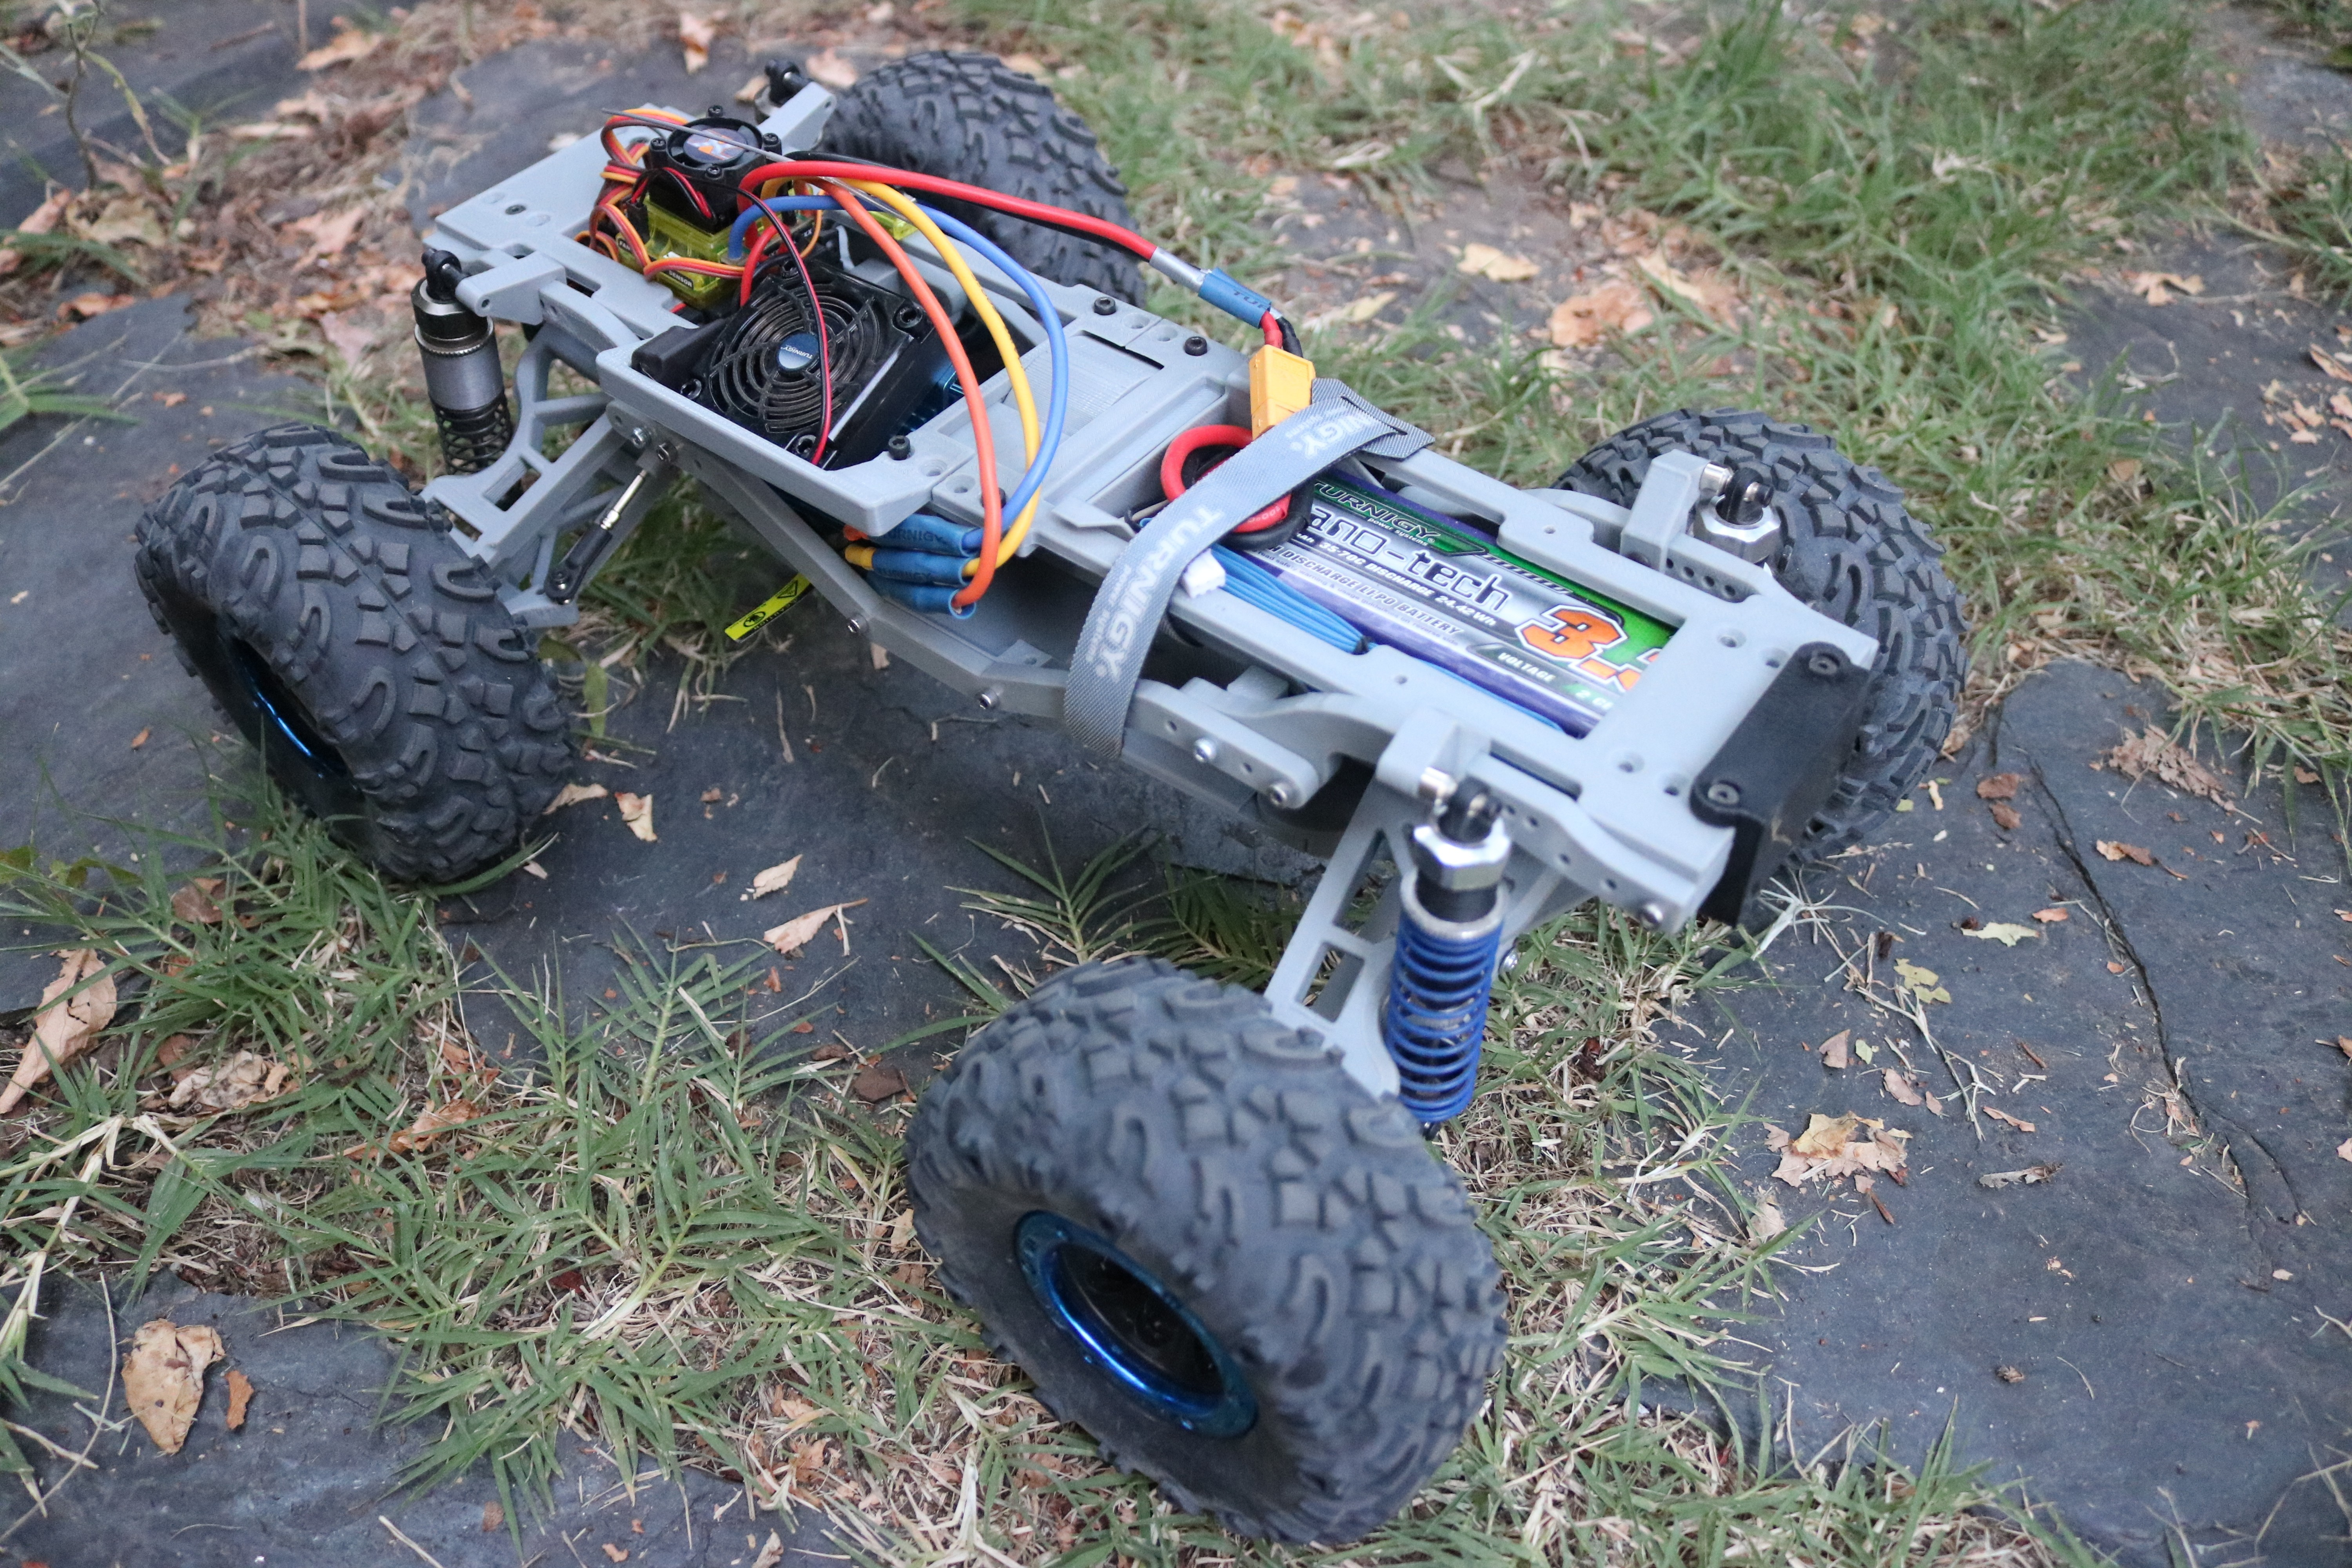 IMG_3879.JPG Download STL file MyRCCar 1/10 MTC Chassis Updated. Customizable chassis for Monster Truck, Crawler or Scale RC Car • 3D printer model, dlb5